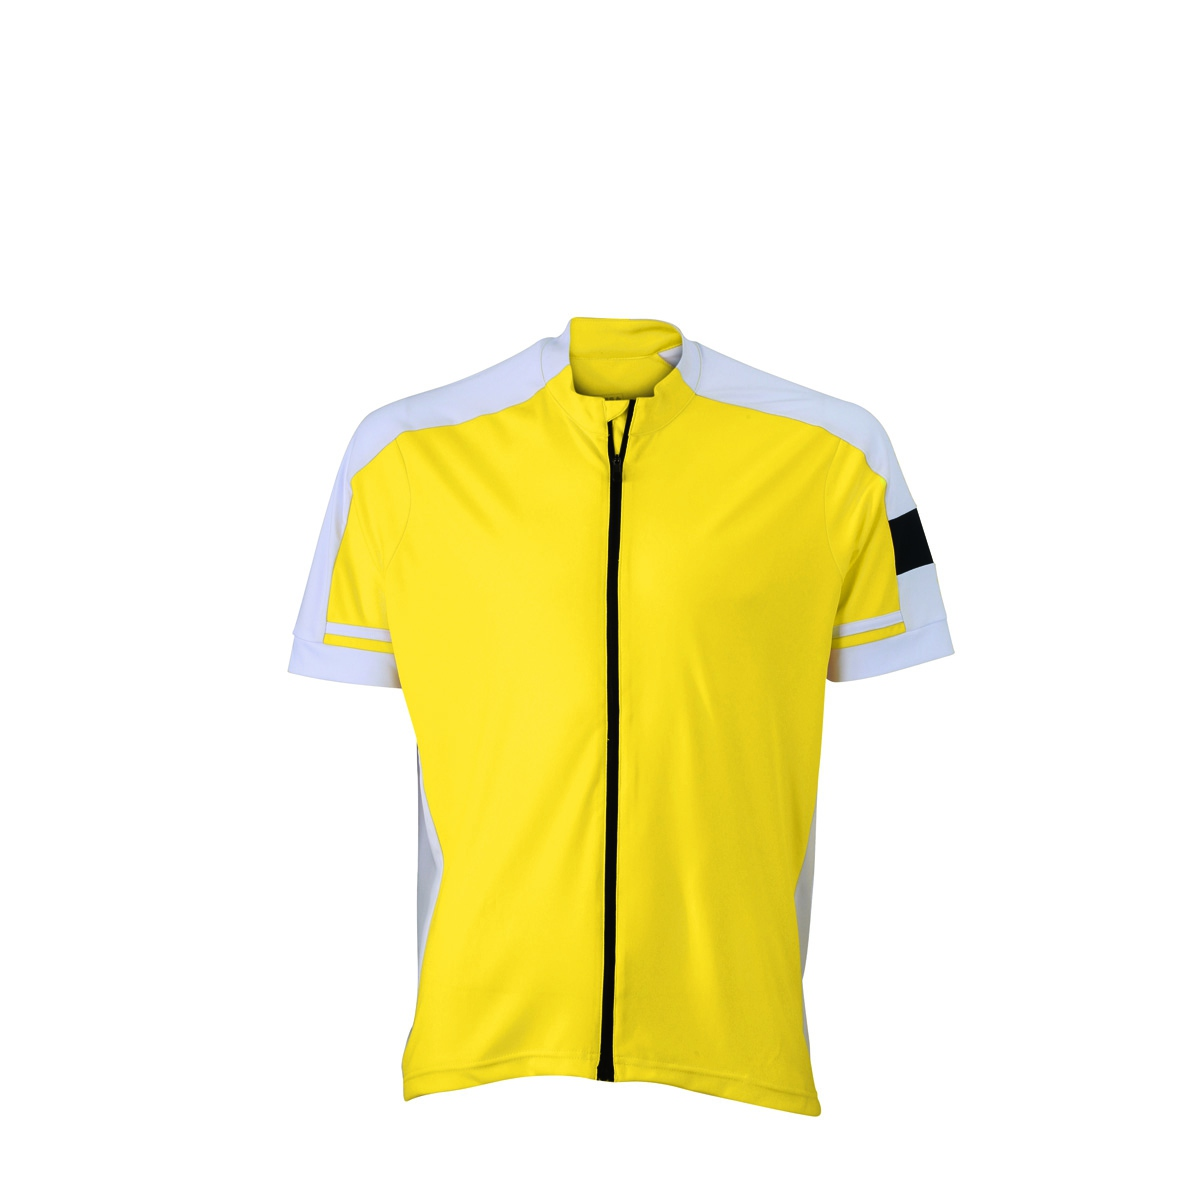 maillot cycliste zipp homme jn454 jaune ebay. Black Bedroom Furniture Sets. Home Design Ideas